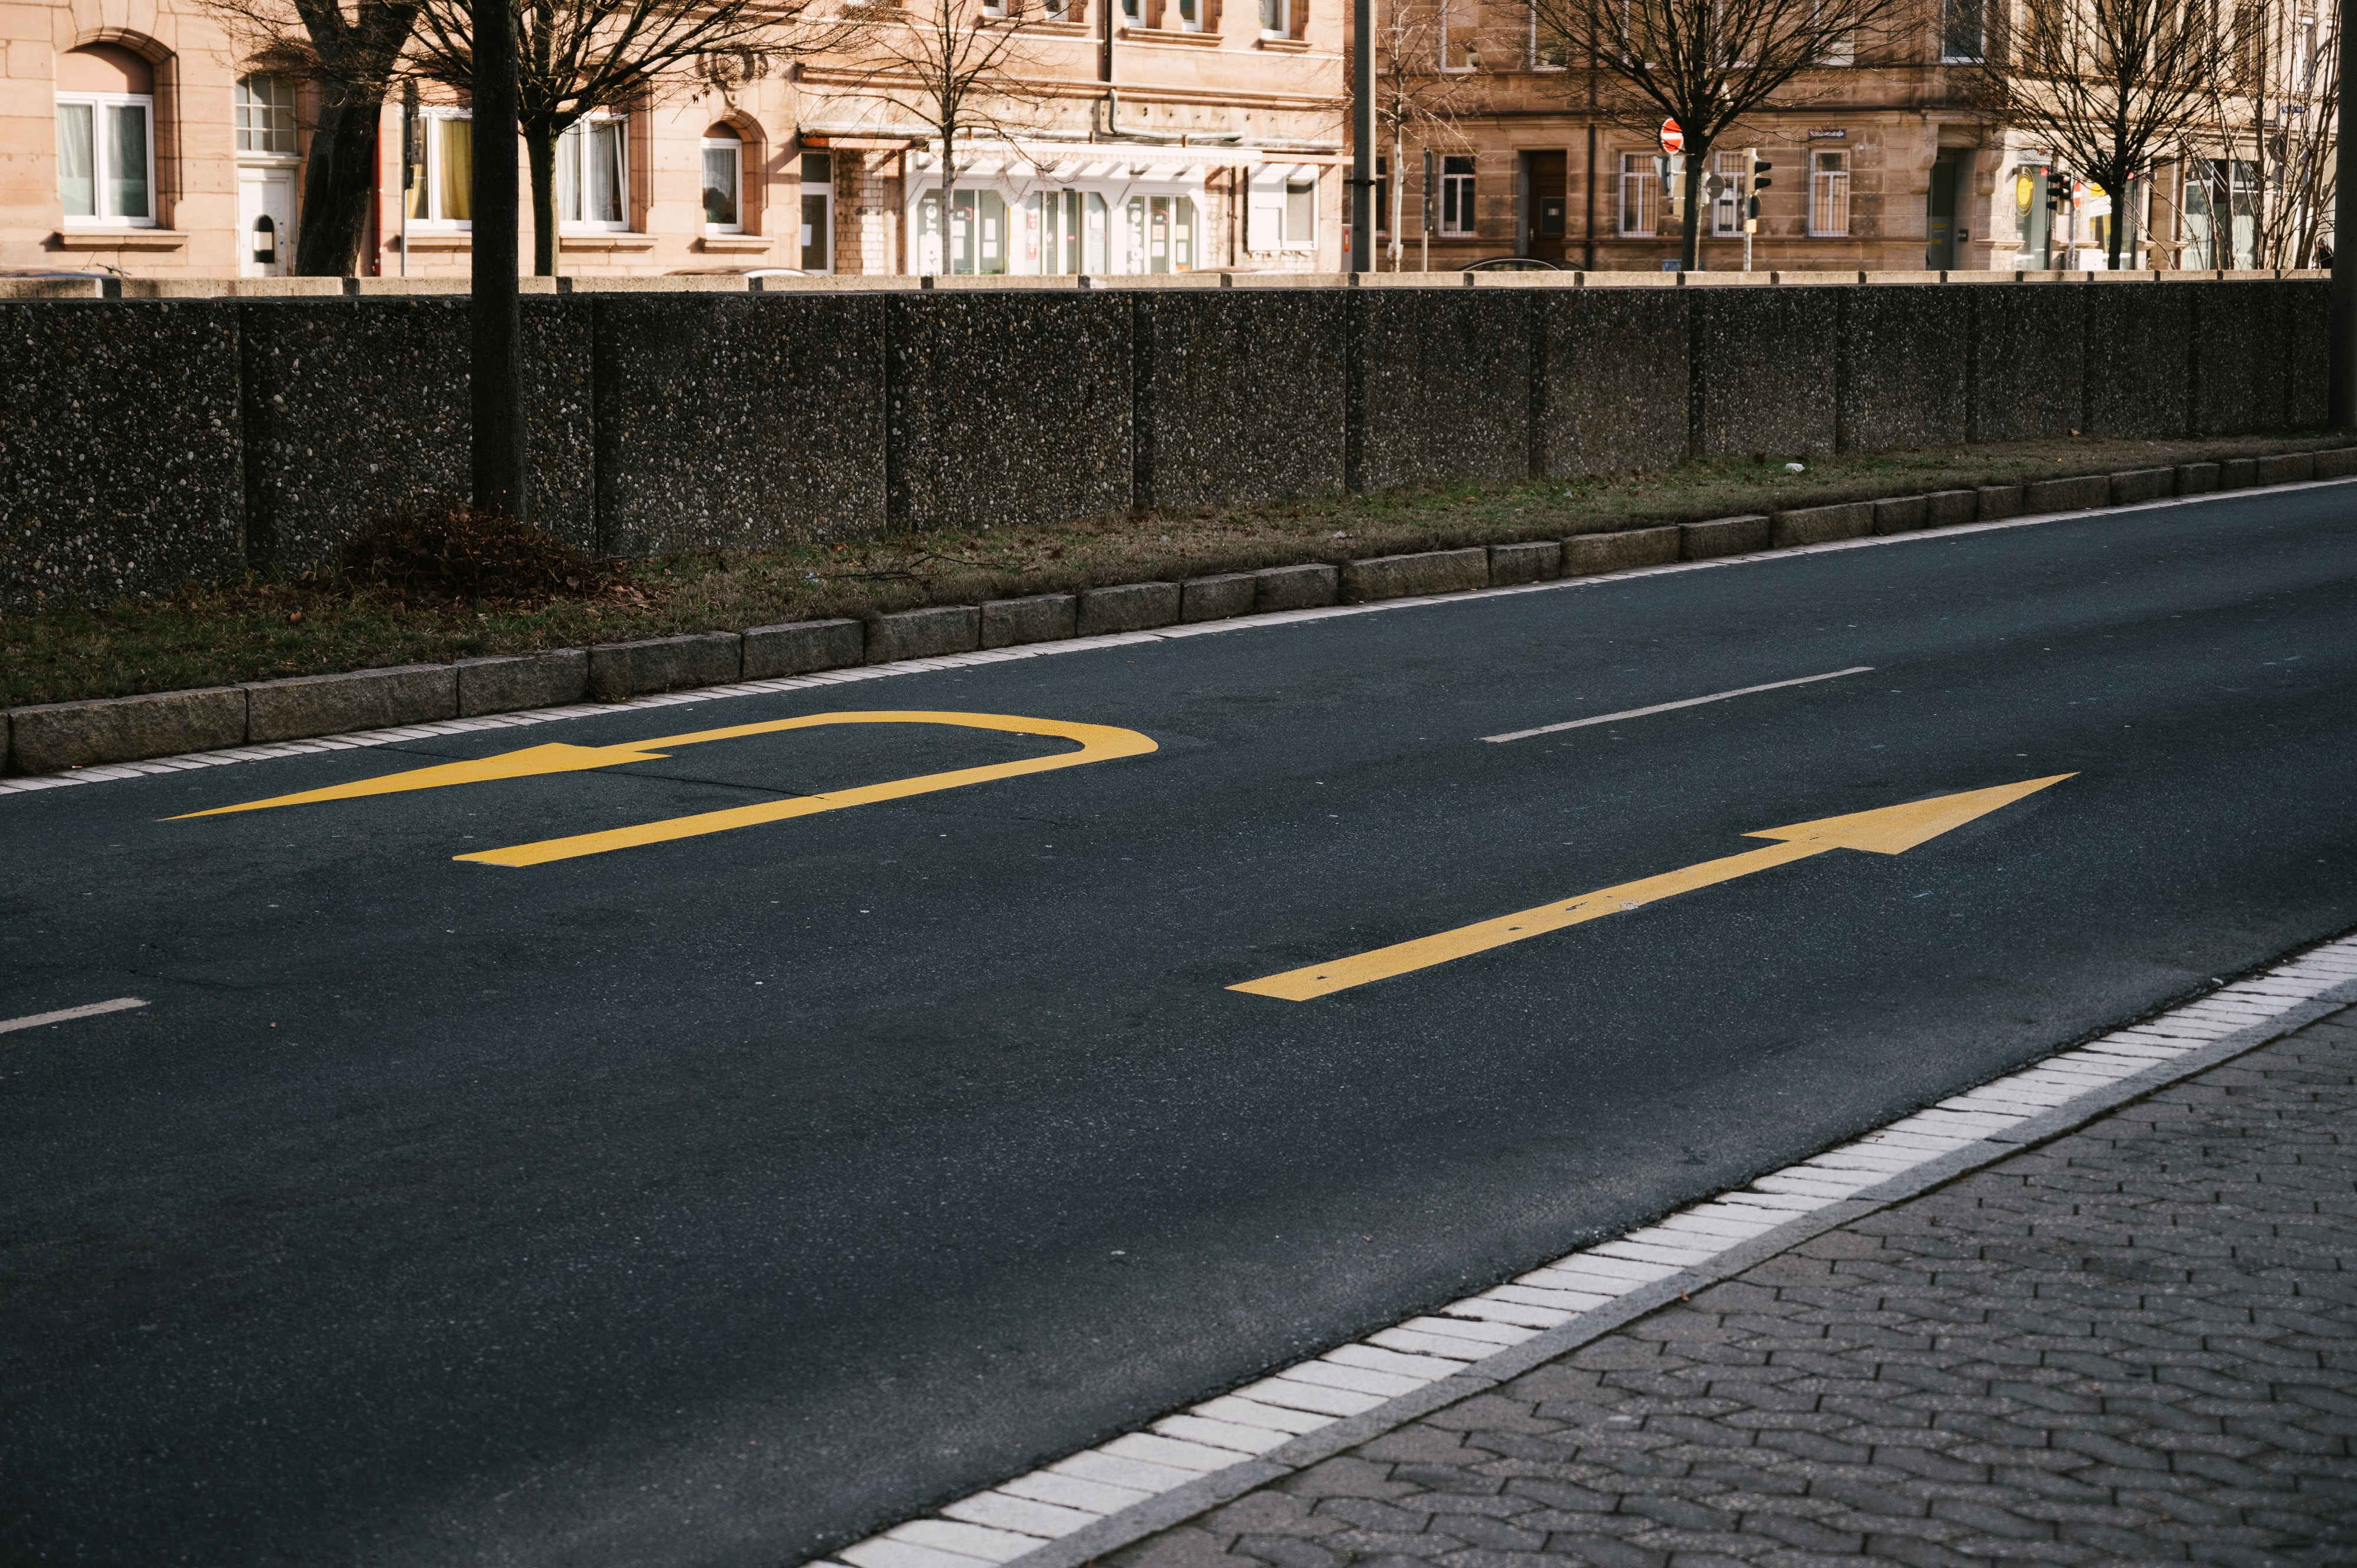 Road markings due to road works.